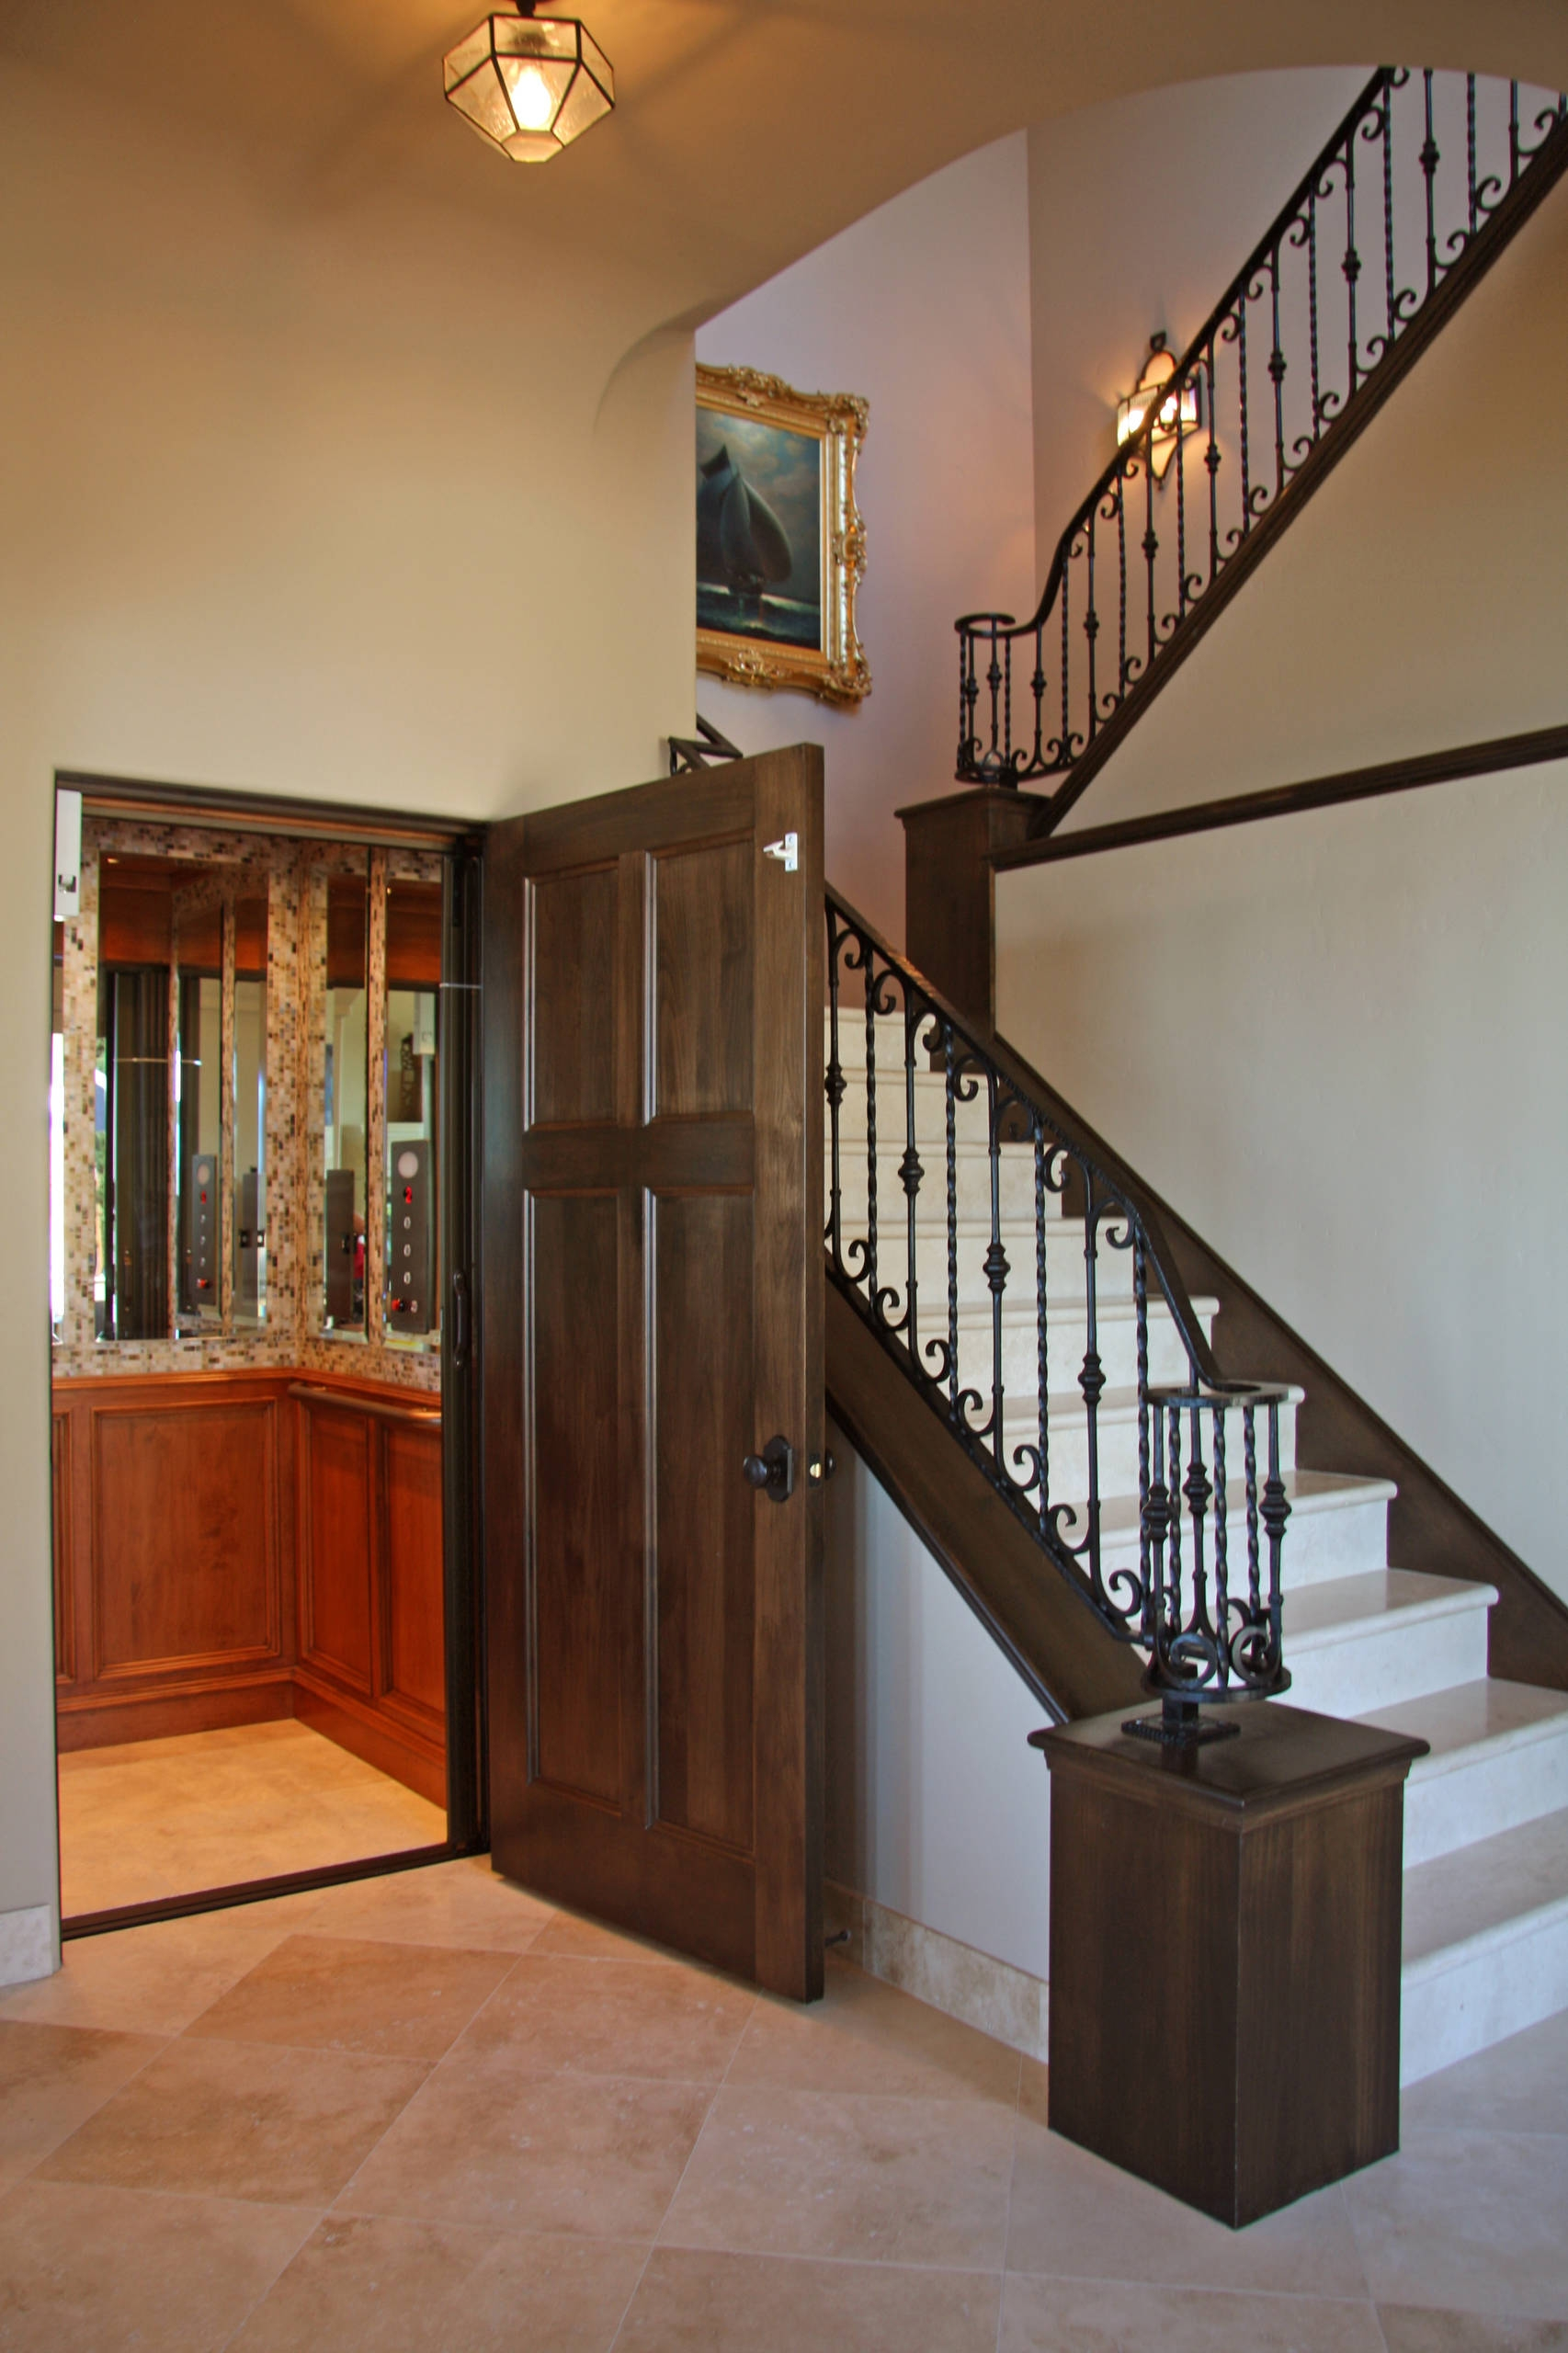 Exterior Front Elevation Staircase Houzz   Home Front Staircase Design   Entrance Front Door Stair   Home Jina   Ghar   Roof Railing Brick   Outer Wall